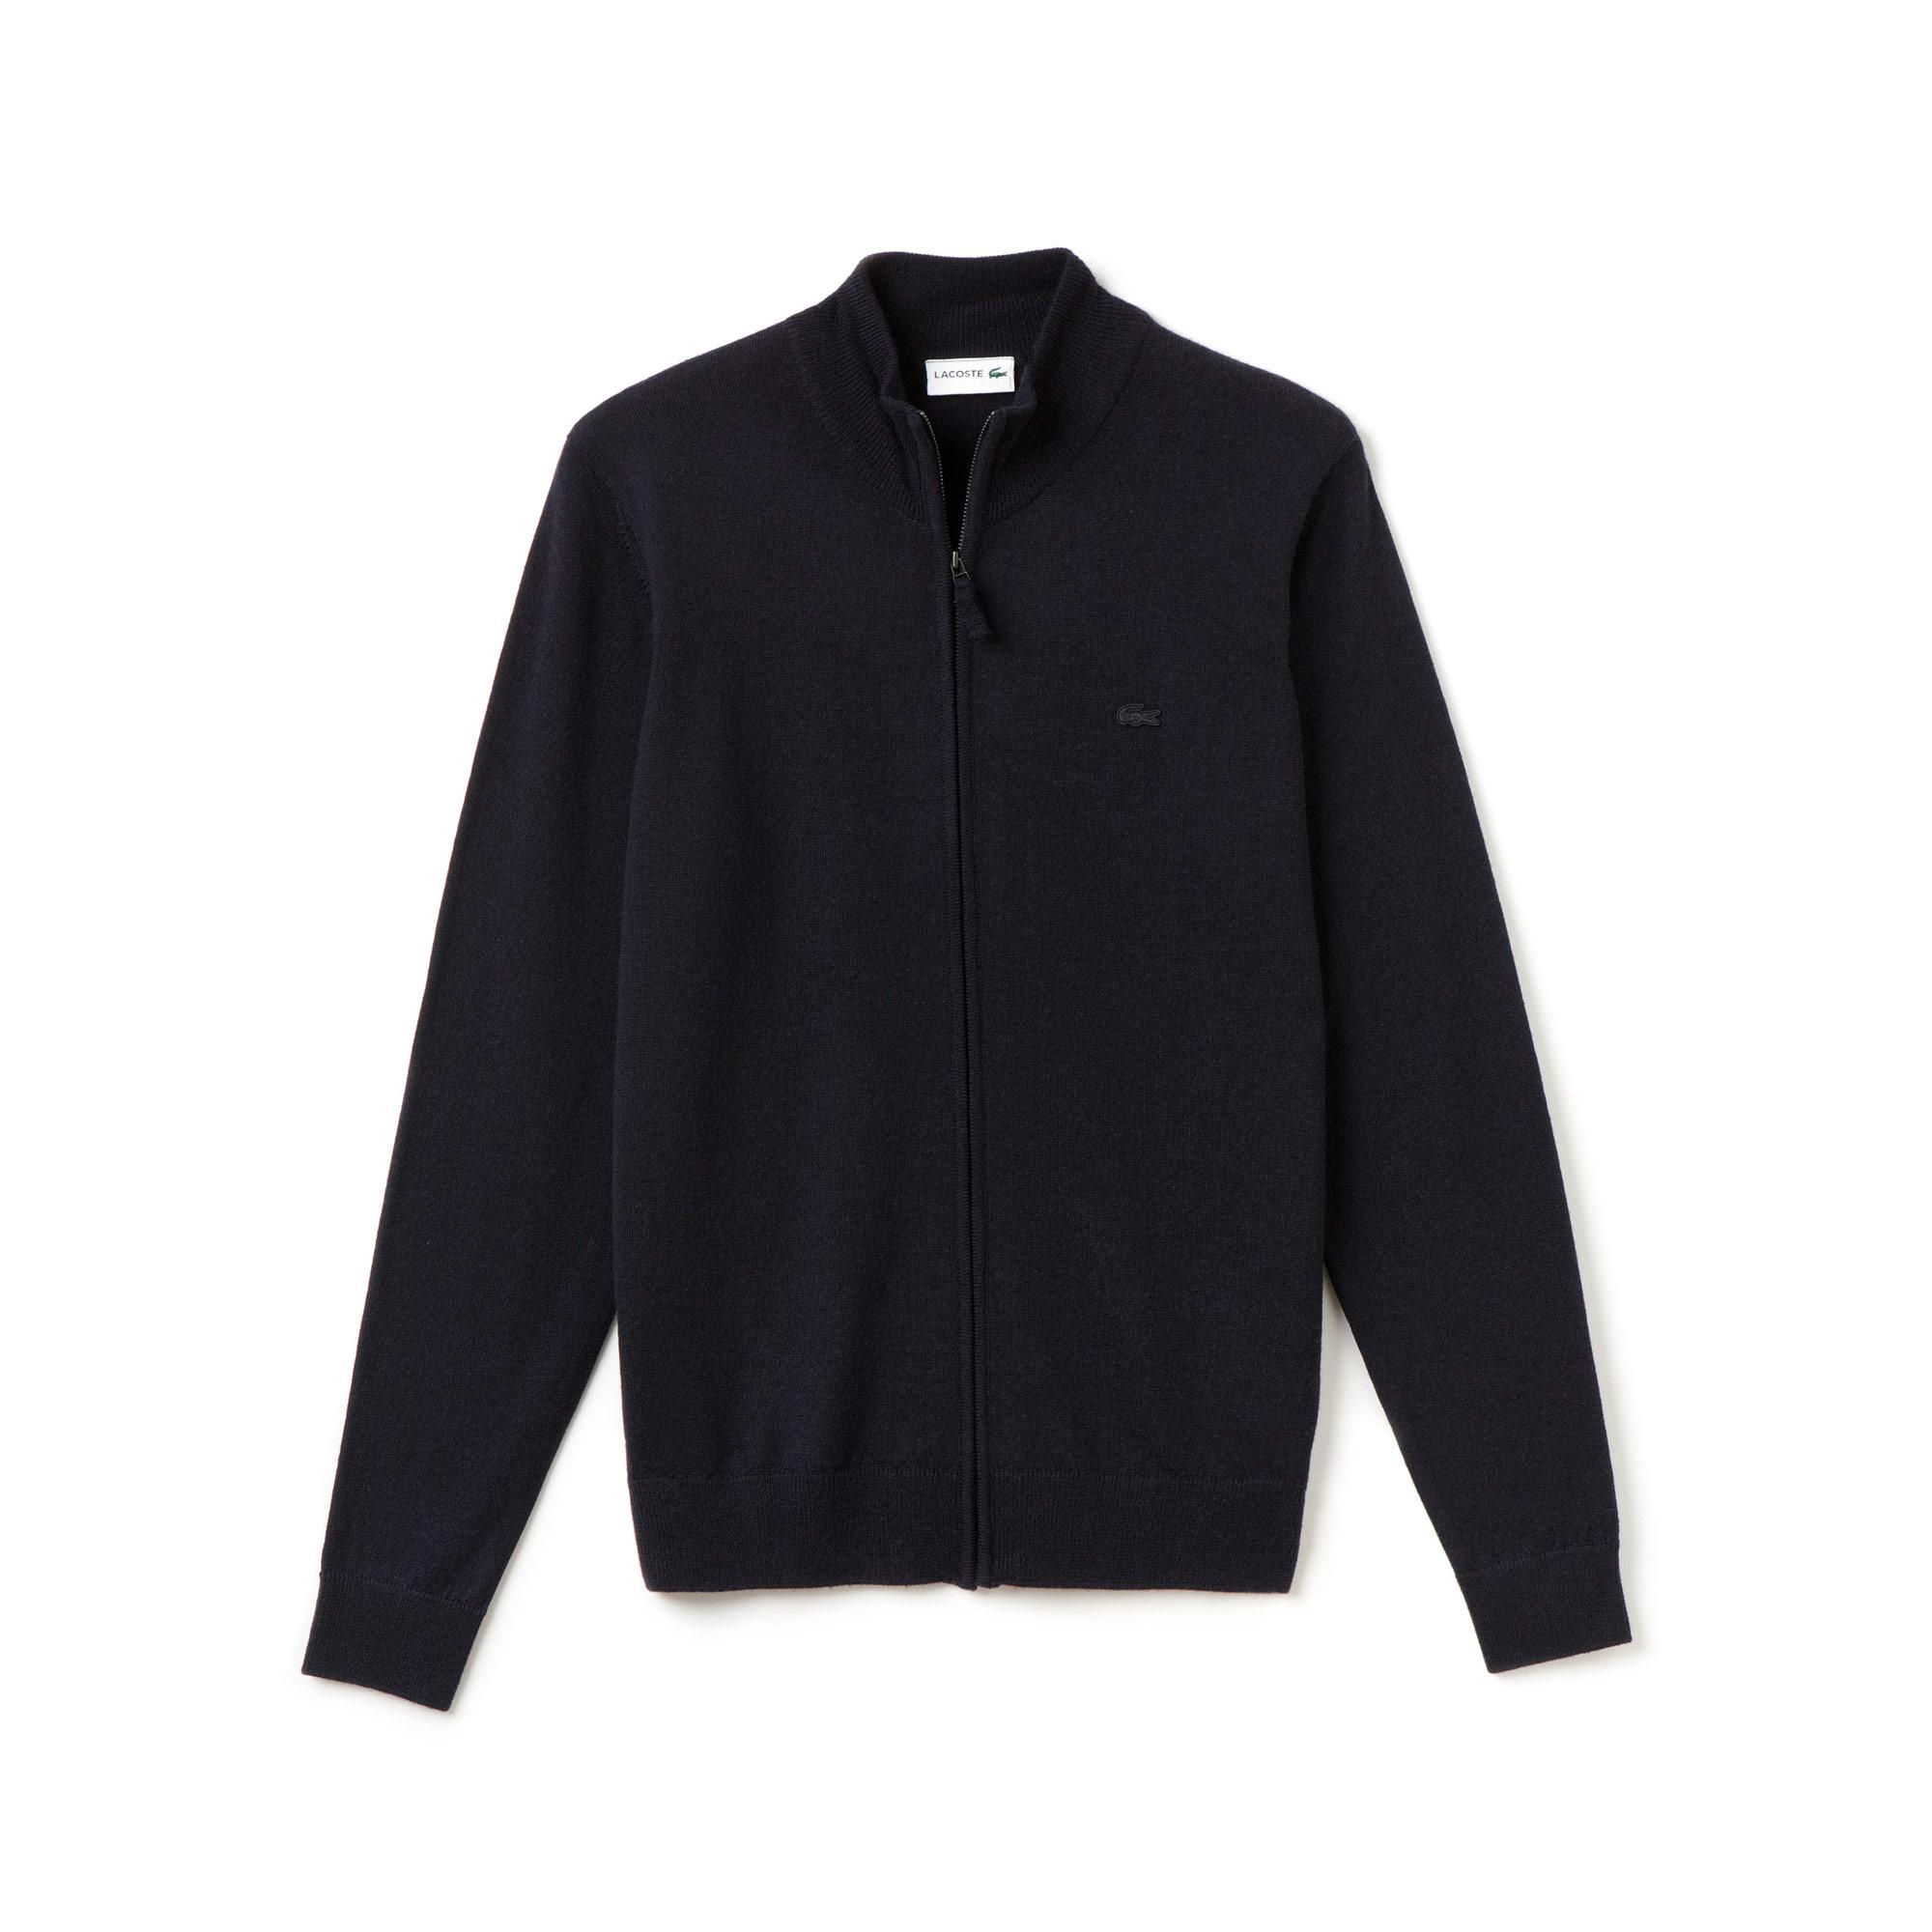 Lacoste Men's Stand-Up Collar Wool Jersey Zippered Cardigan